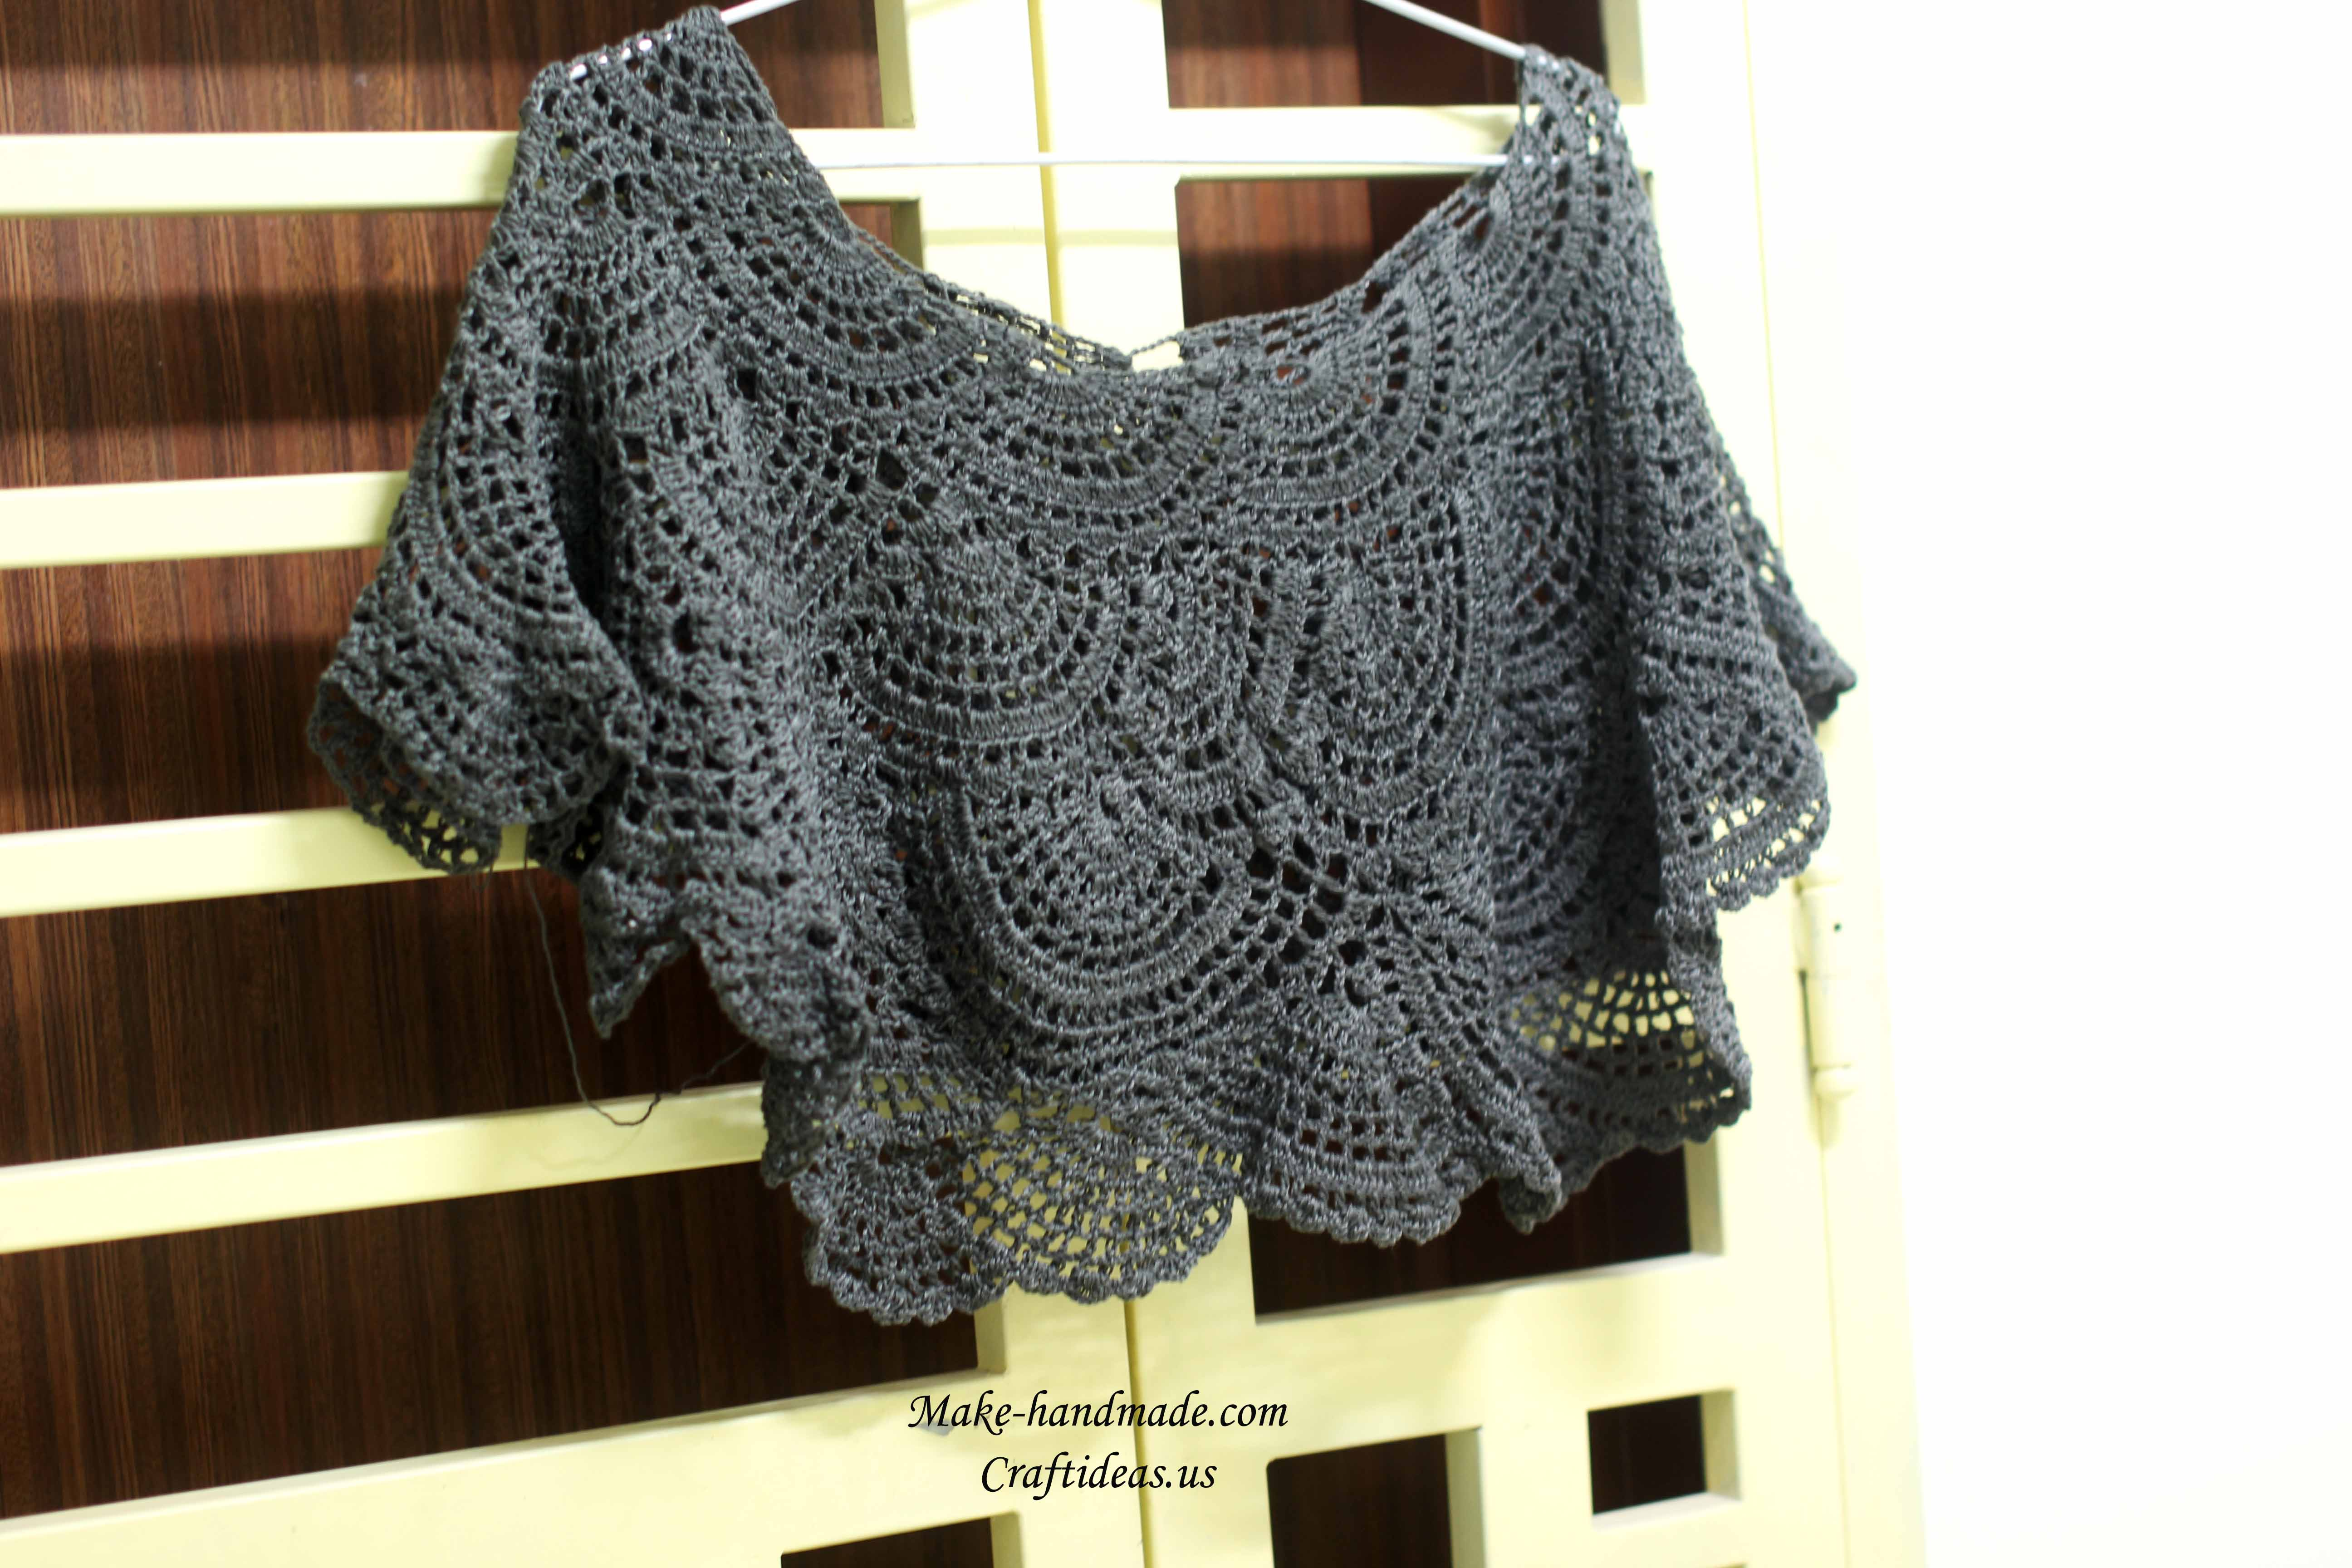 crochet so cute skirt and poncho 2 in 1 | make handmade, crochet, craft